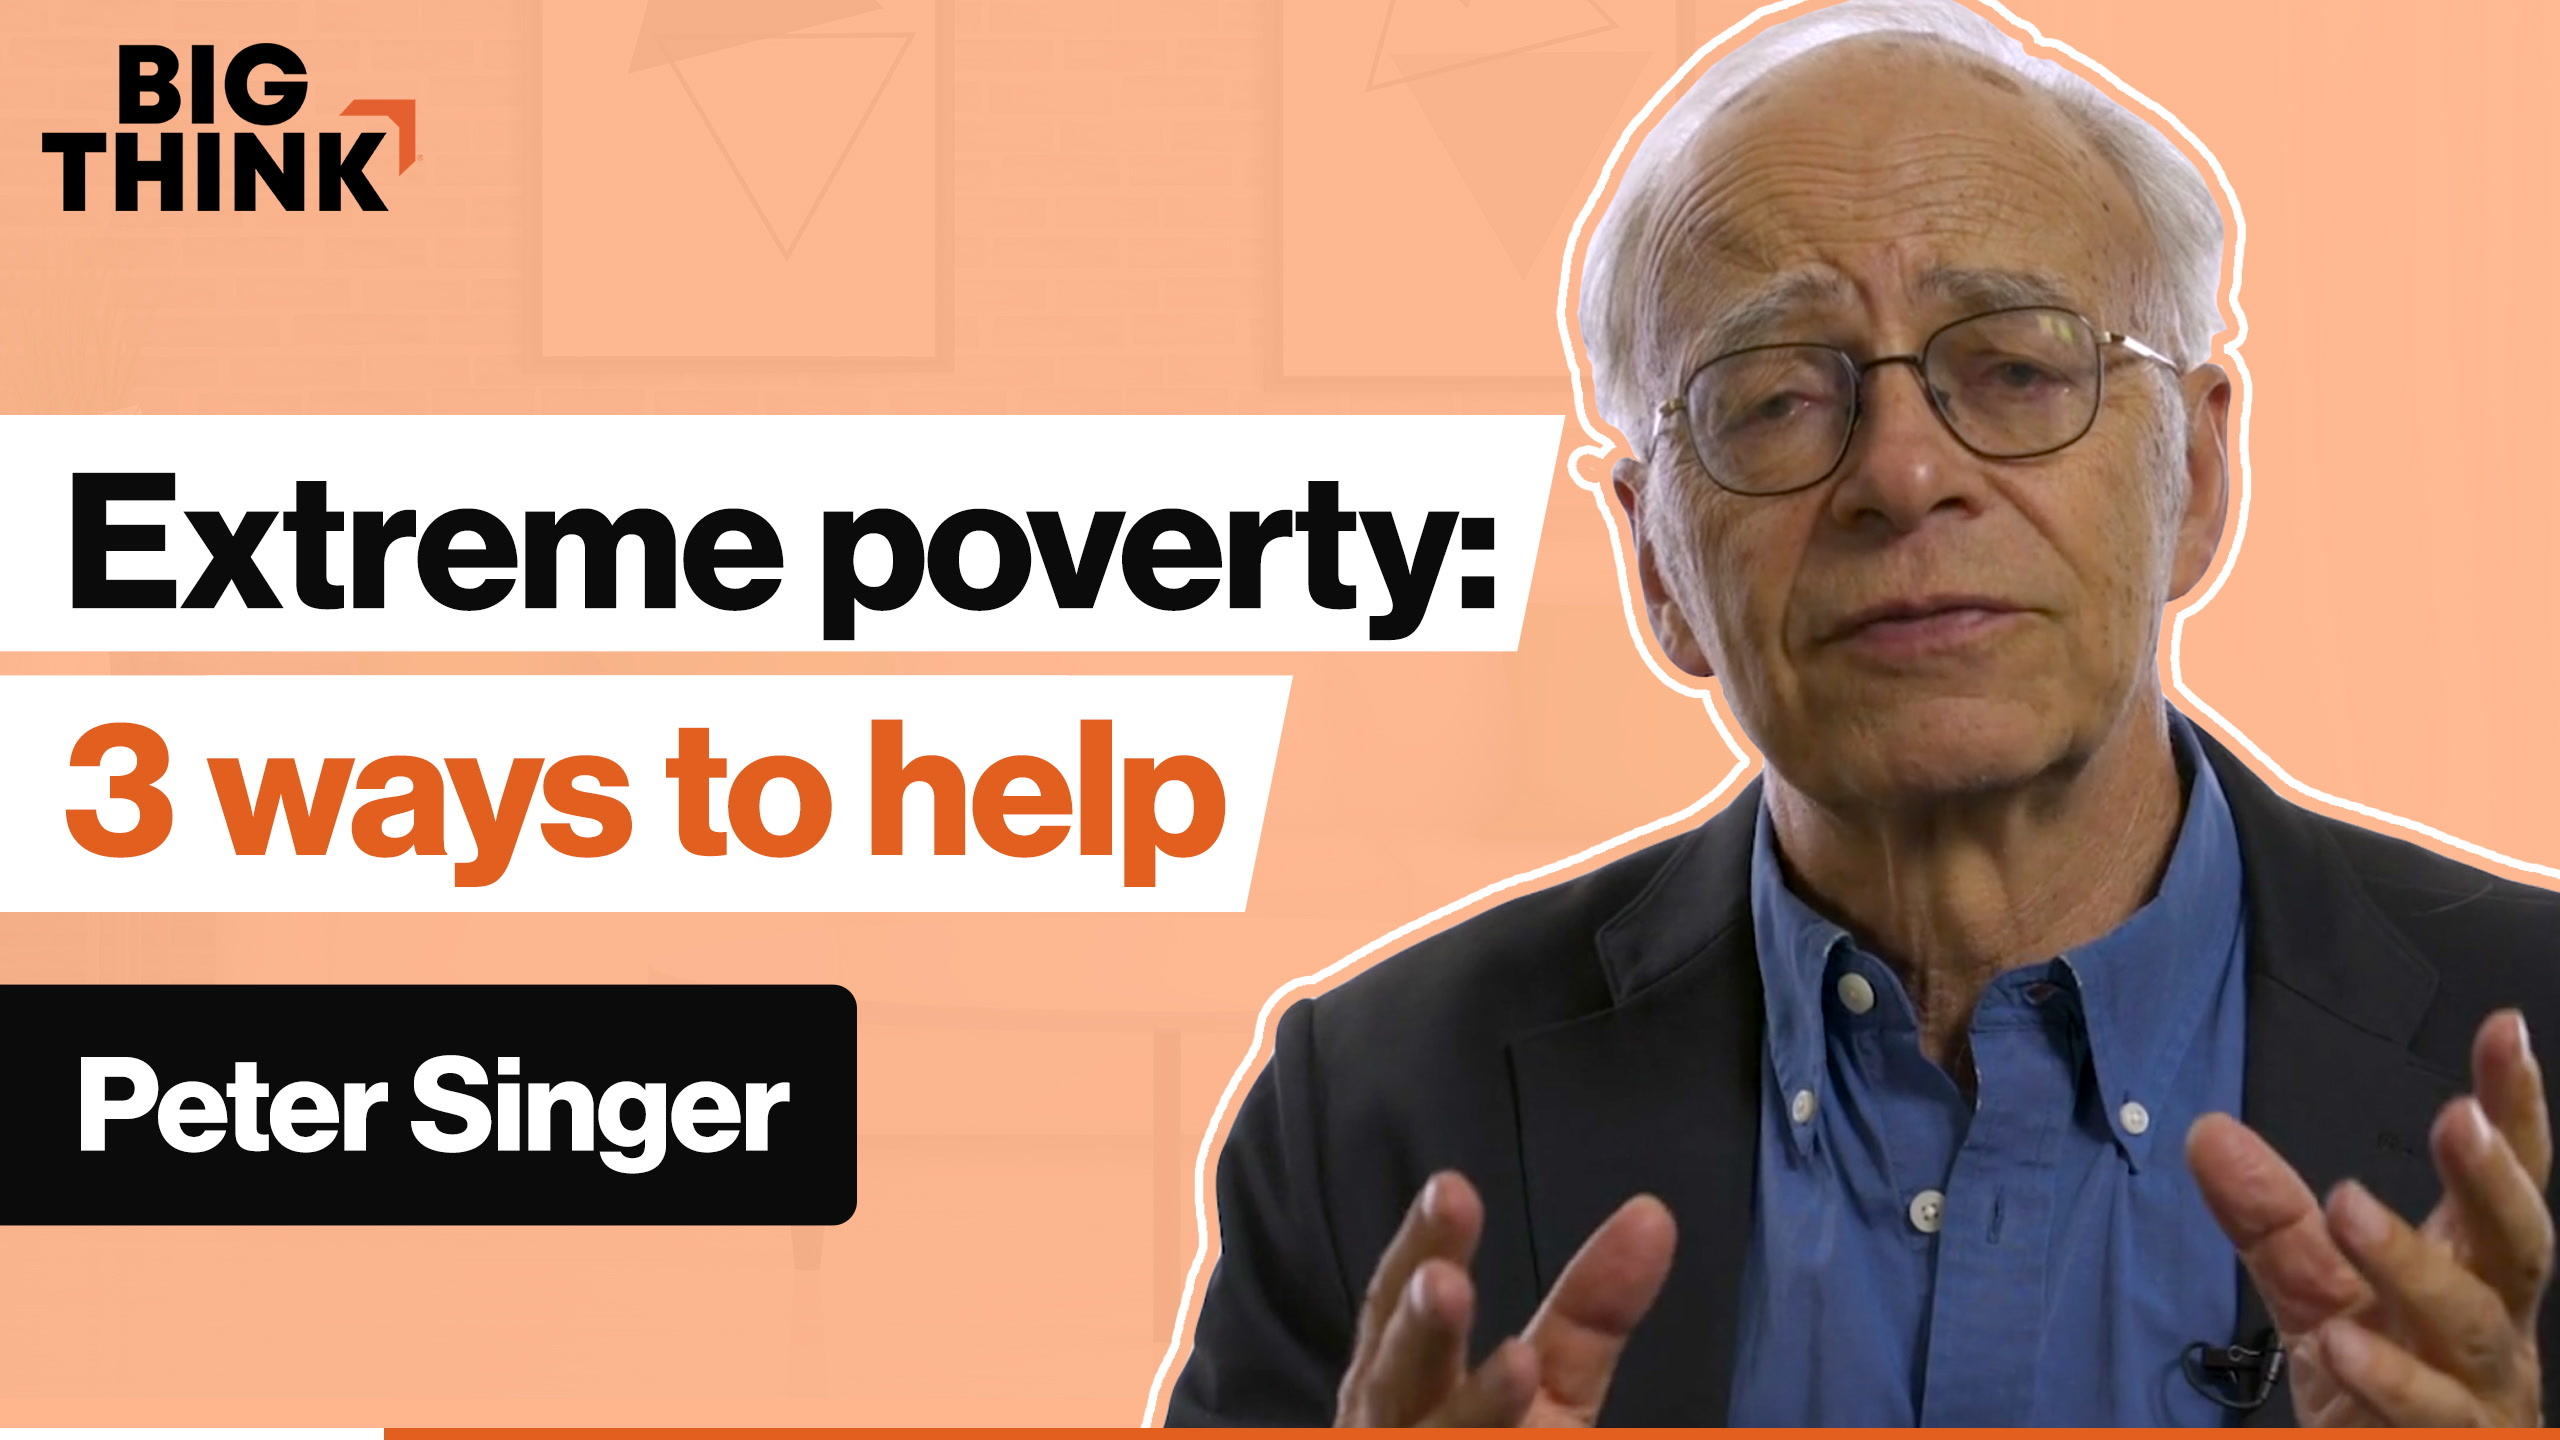 3 easy ways to help people in extreme poverty